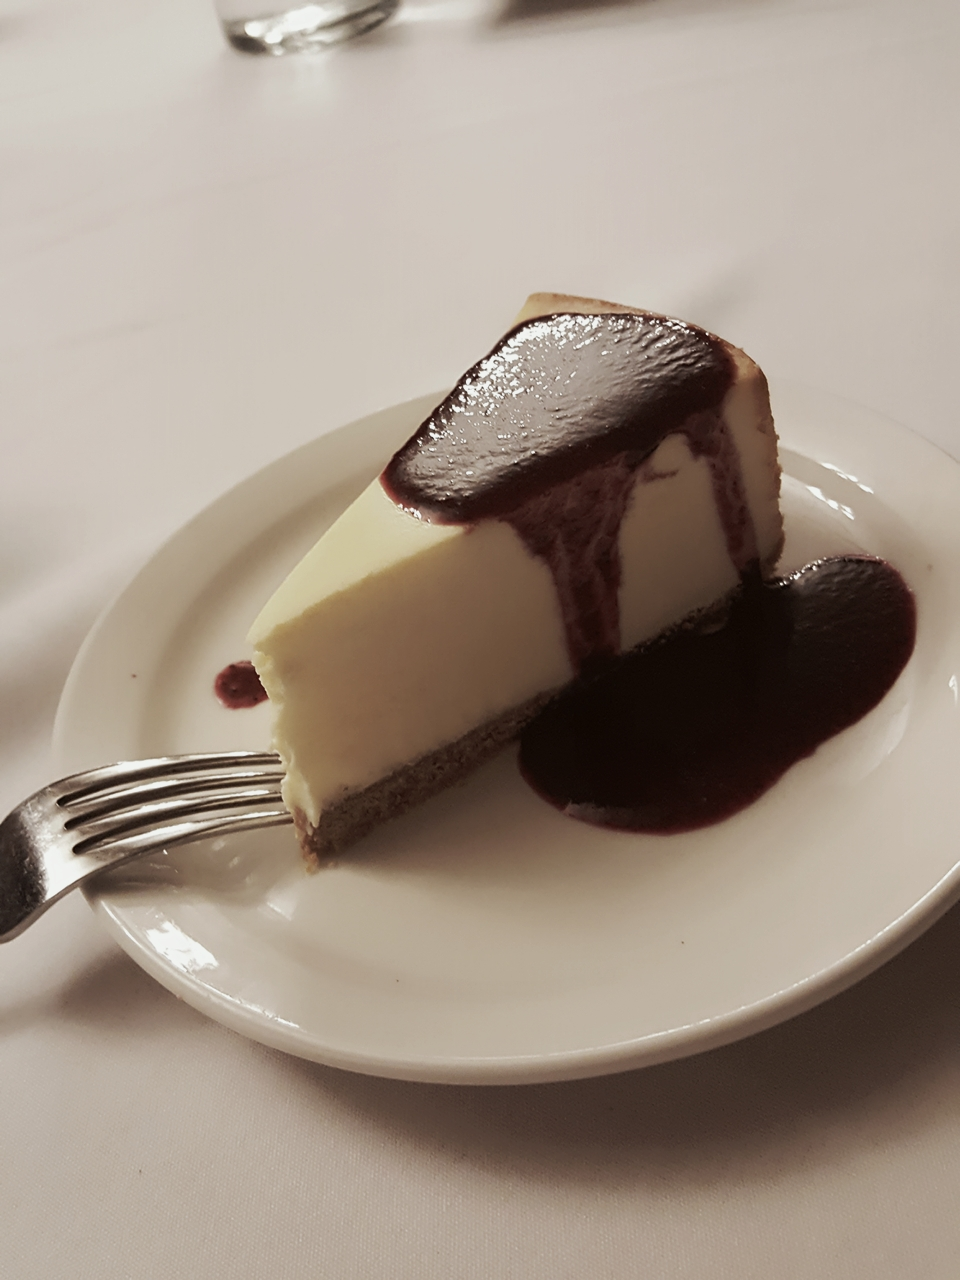 Chocolate-covered Cheesecake